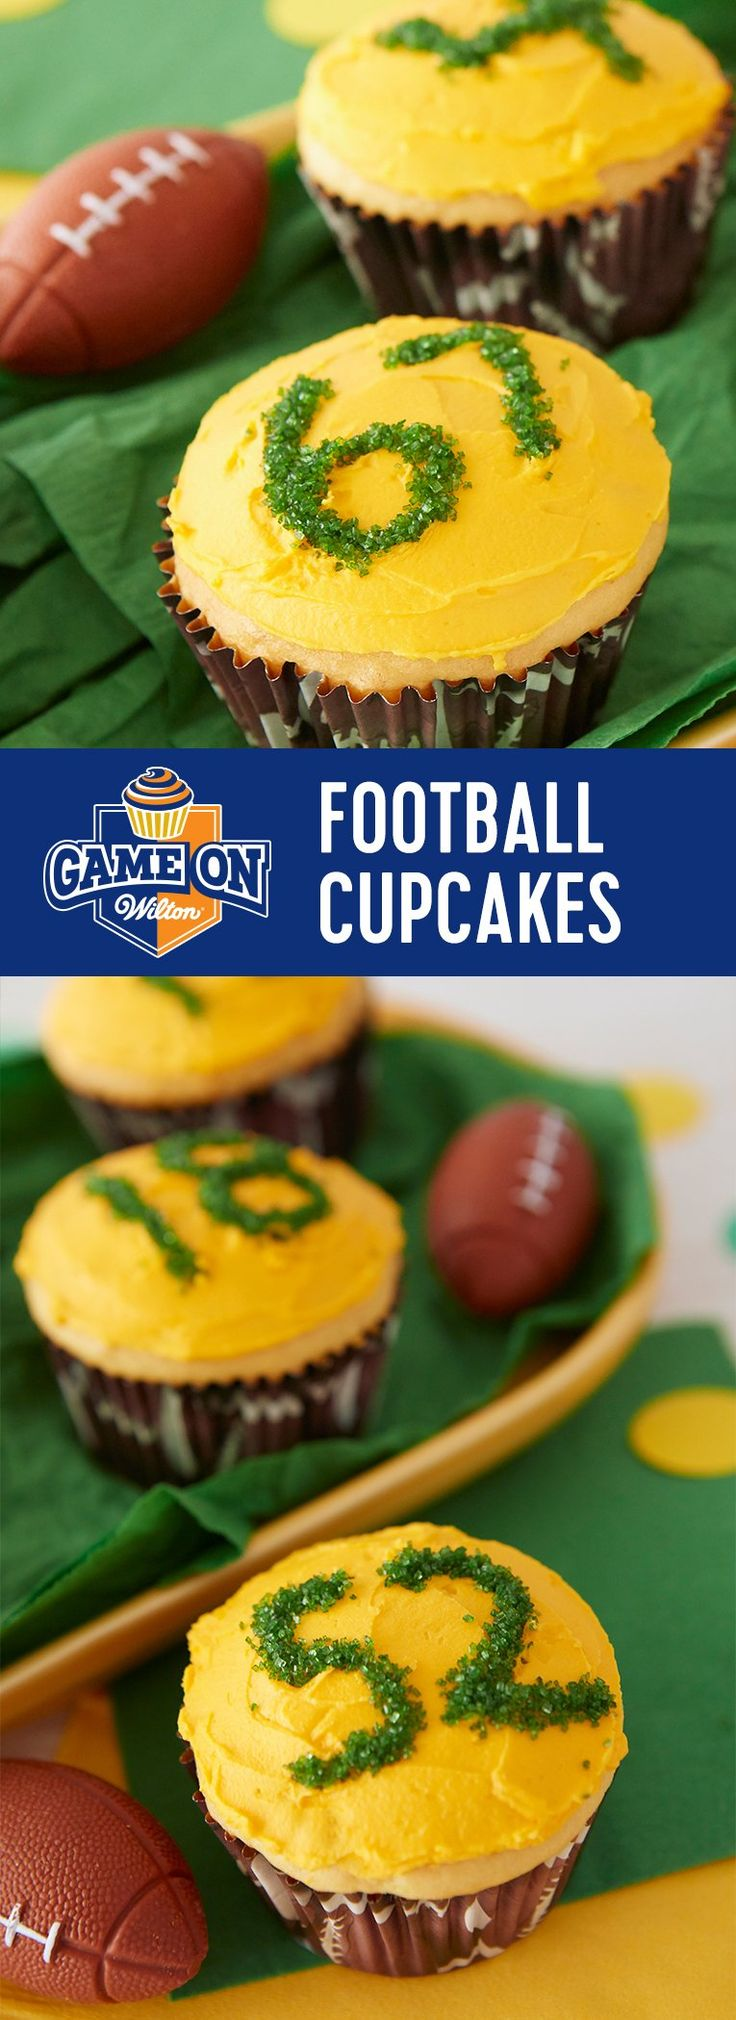 Colorful cupcakes made to match your team's favorite colors make great tailgating treats. Add player's numbers easily with the Wilton Sugar Writer™ Sanding Sugar Pen and Sanding Sugars!